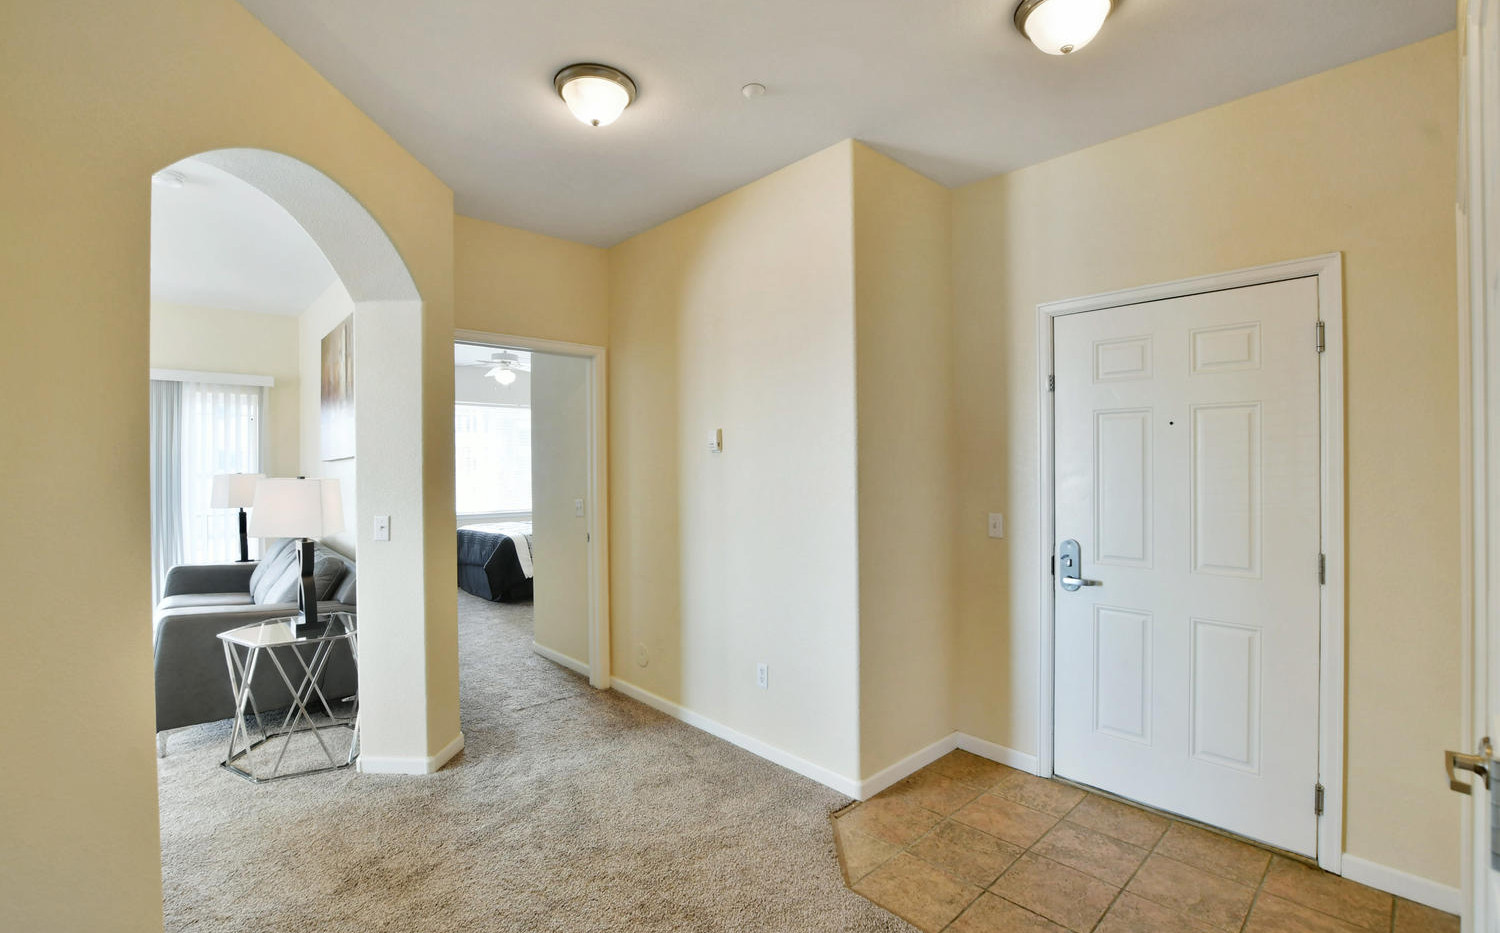 Two bedroom hallway